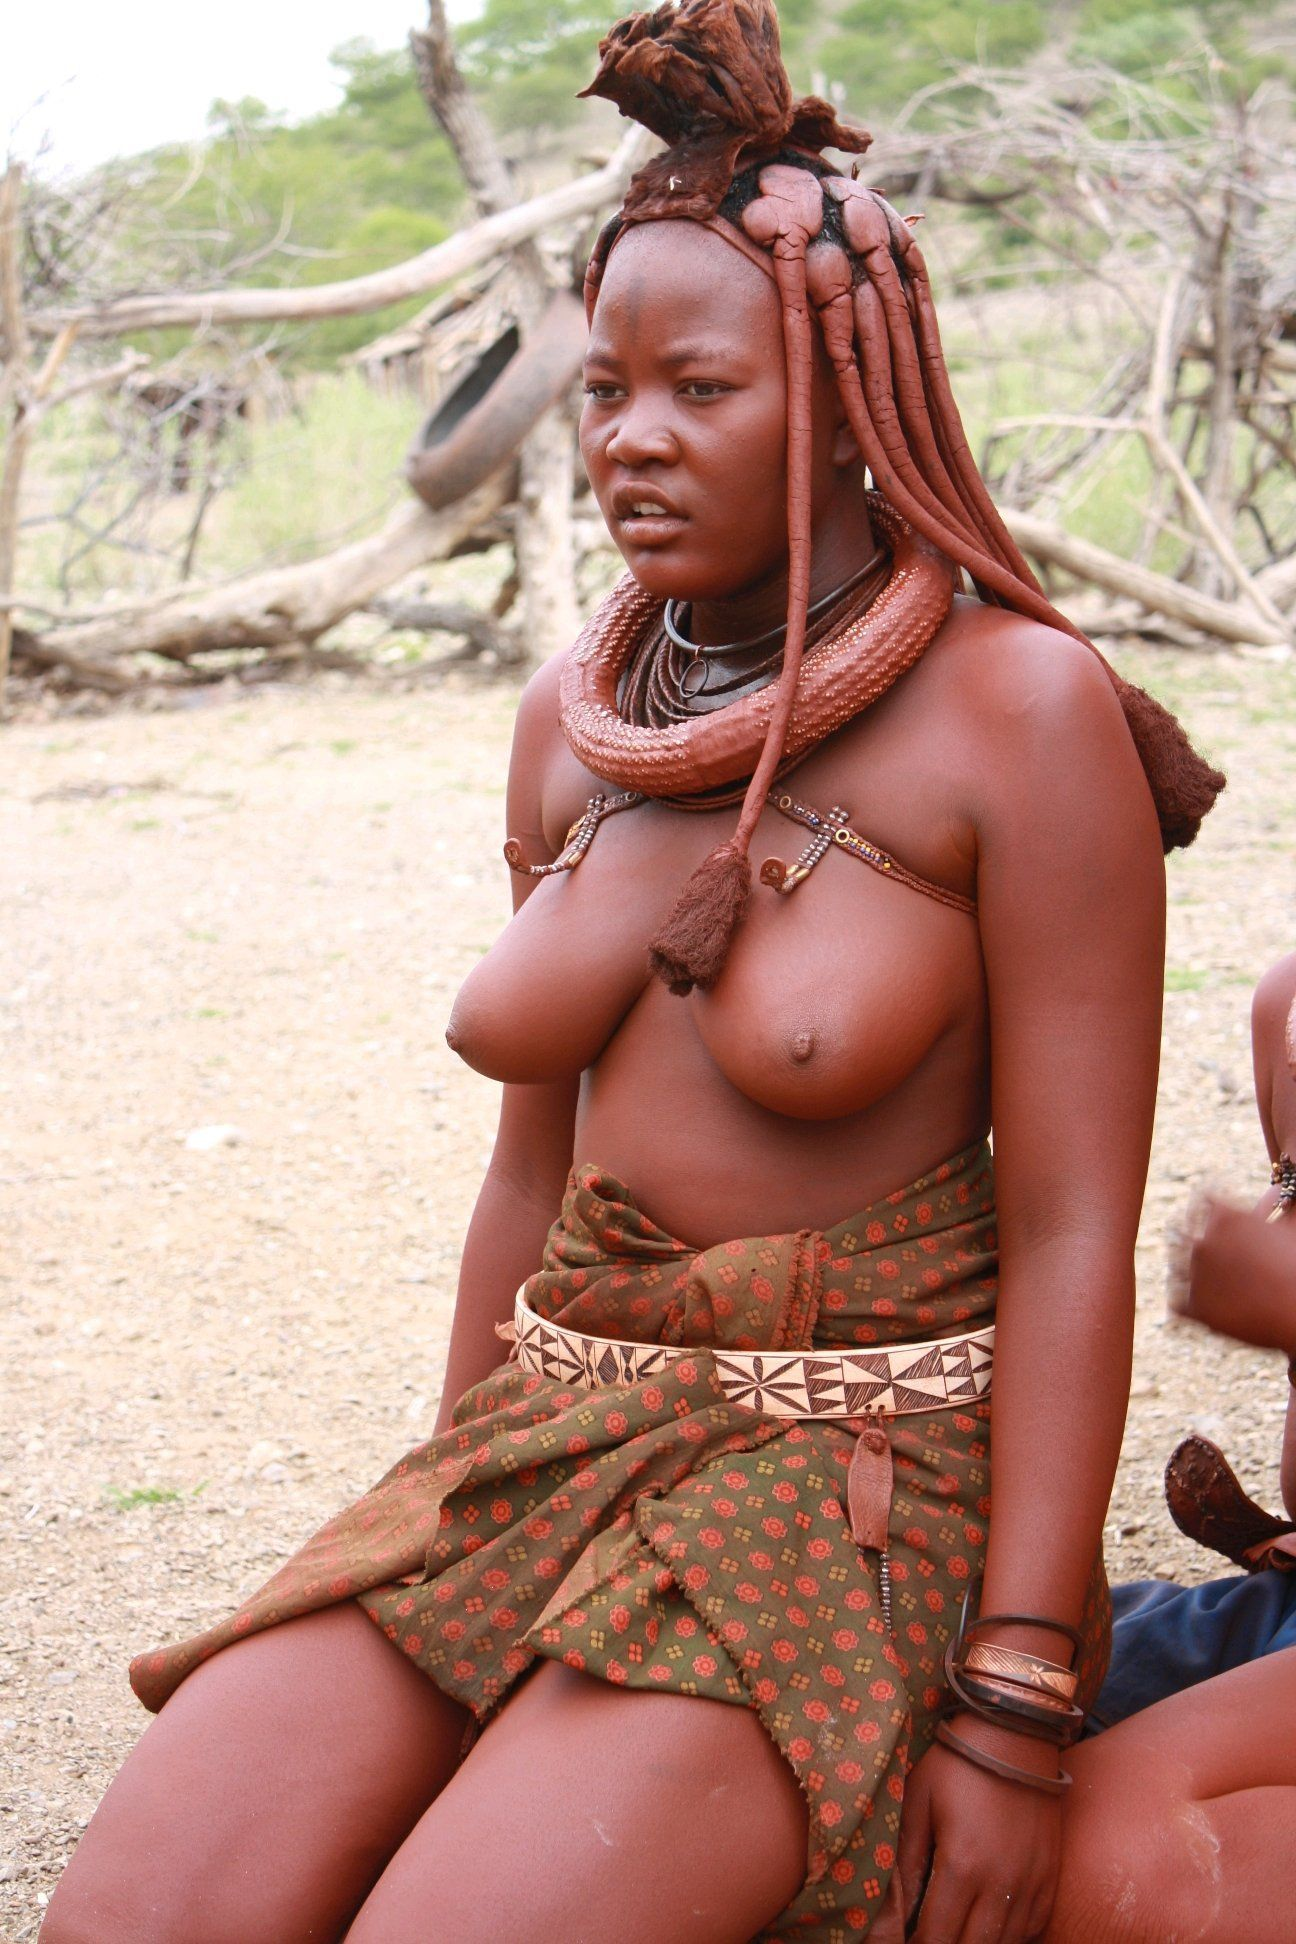 Just that african girl pussy and boobs